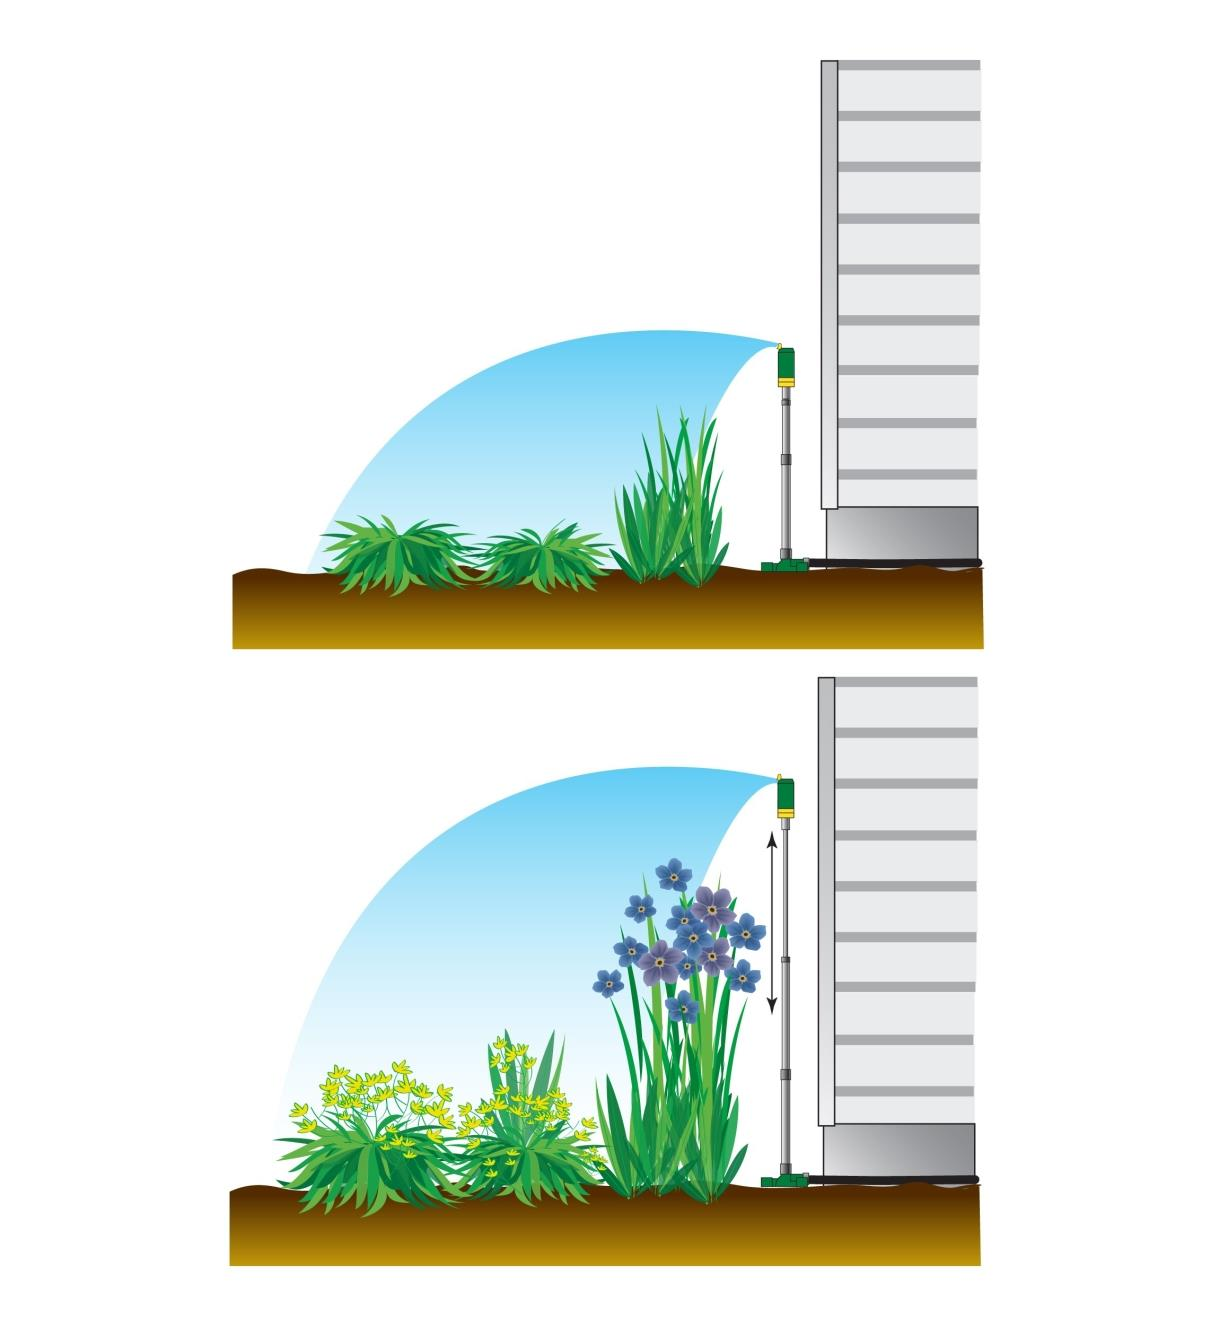 Diagram shows Telescoping Sprinkler Tower at a lower height as well as raised when plants are taller